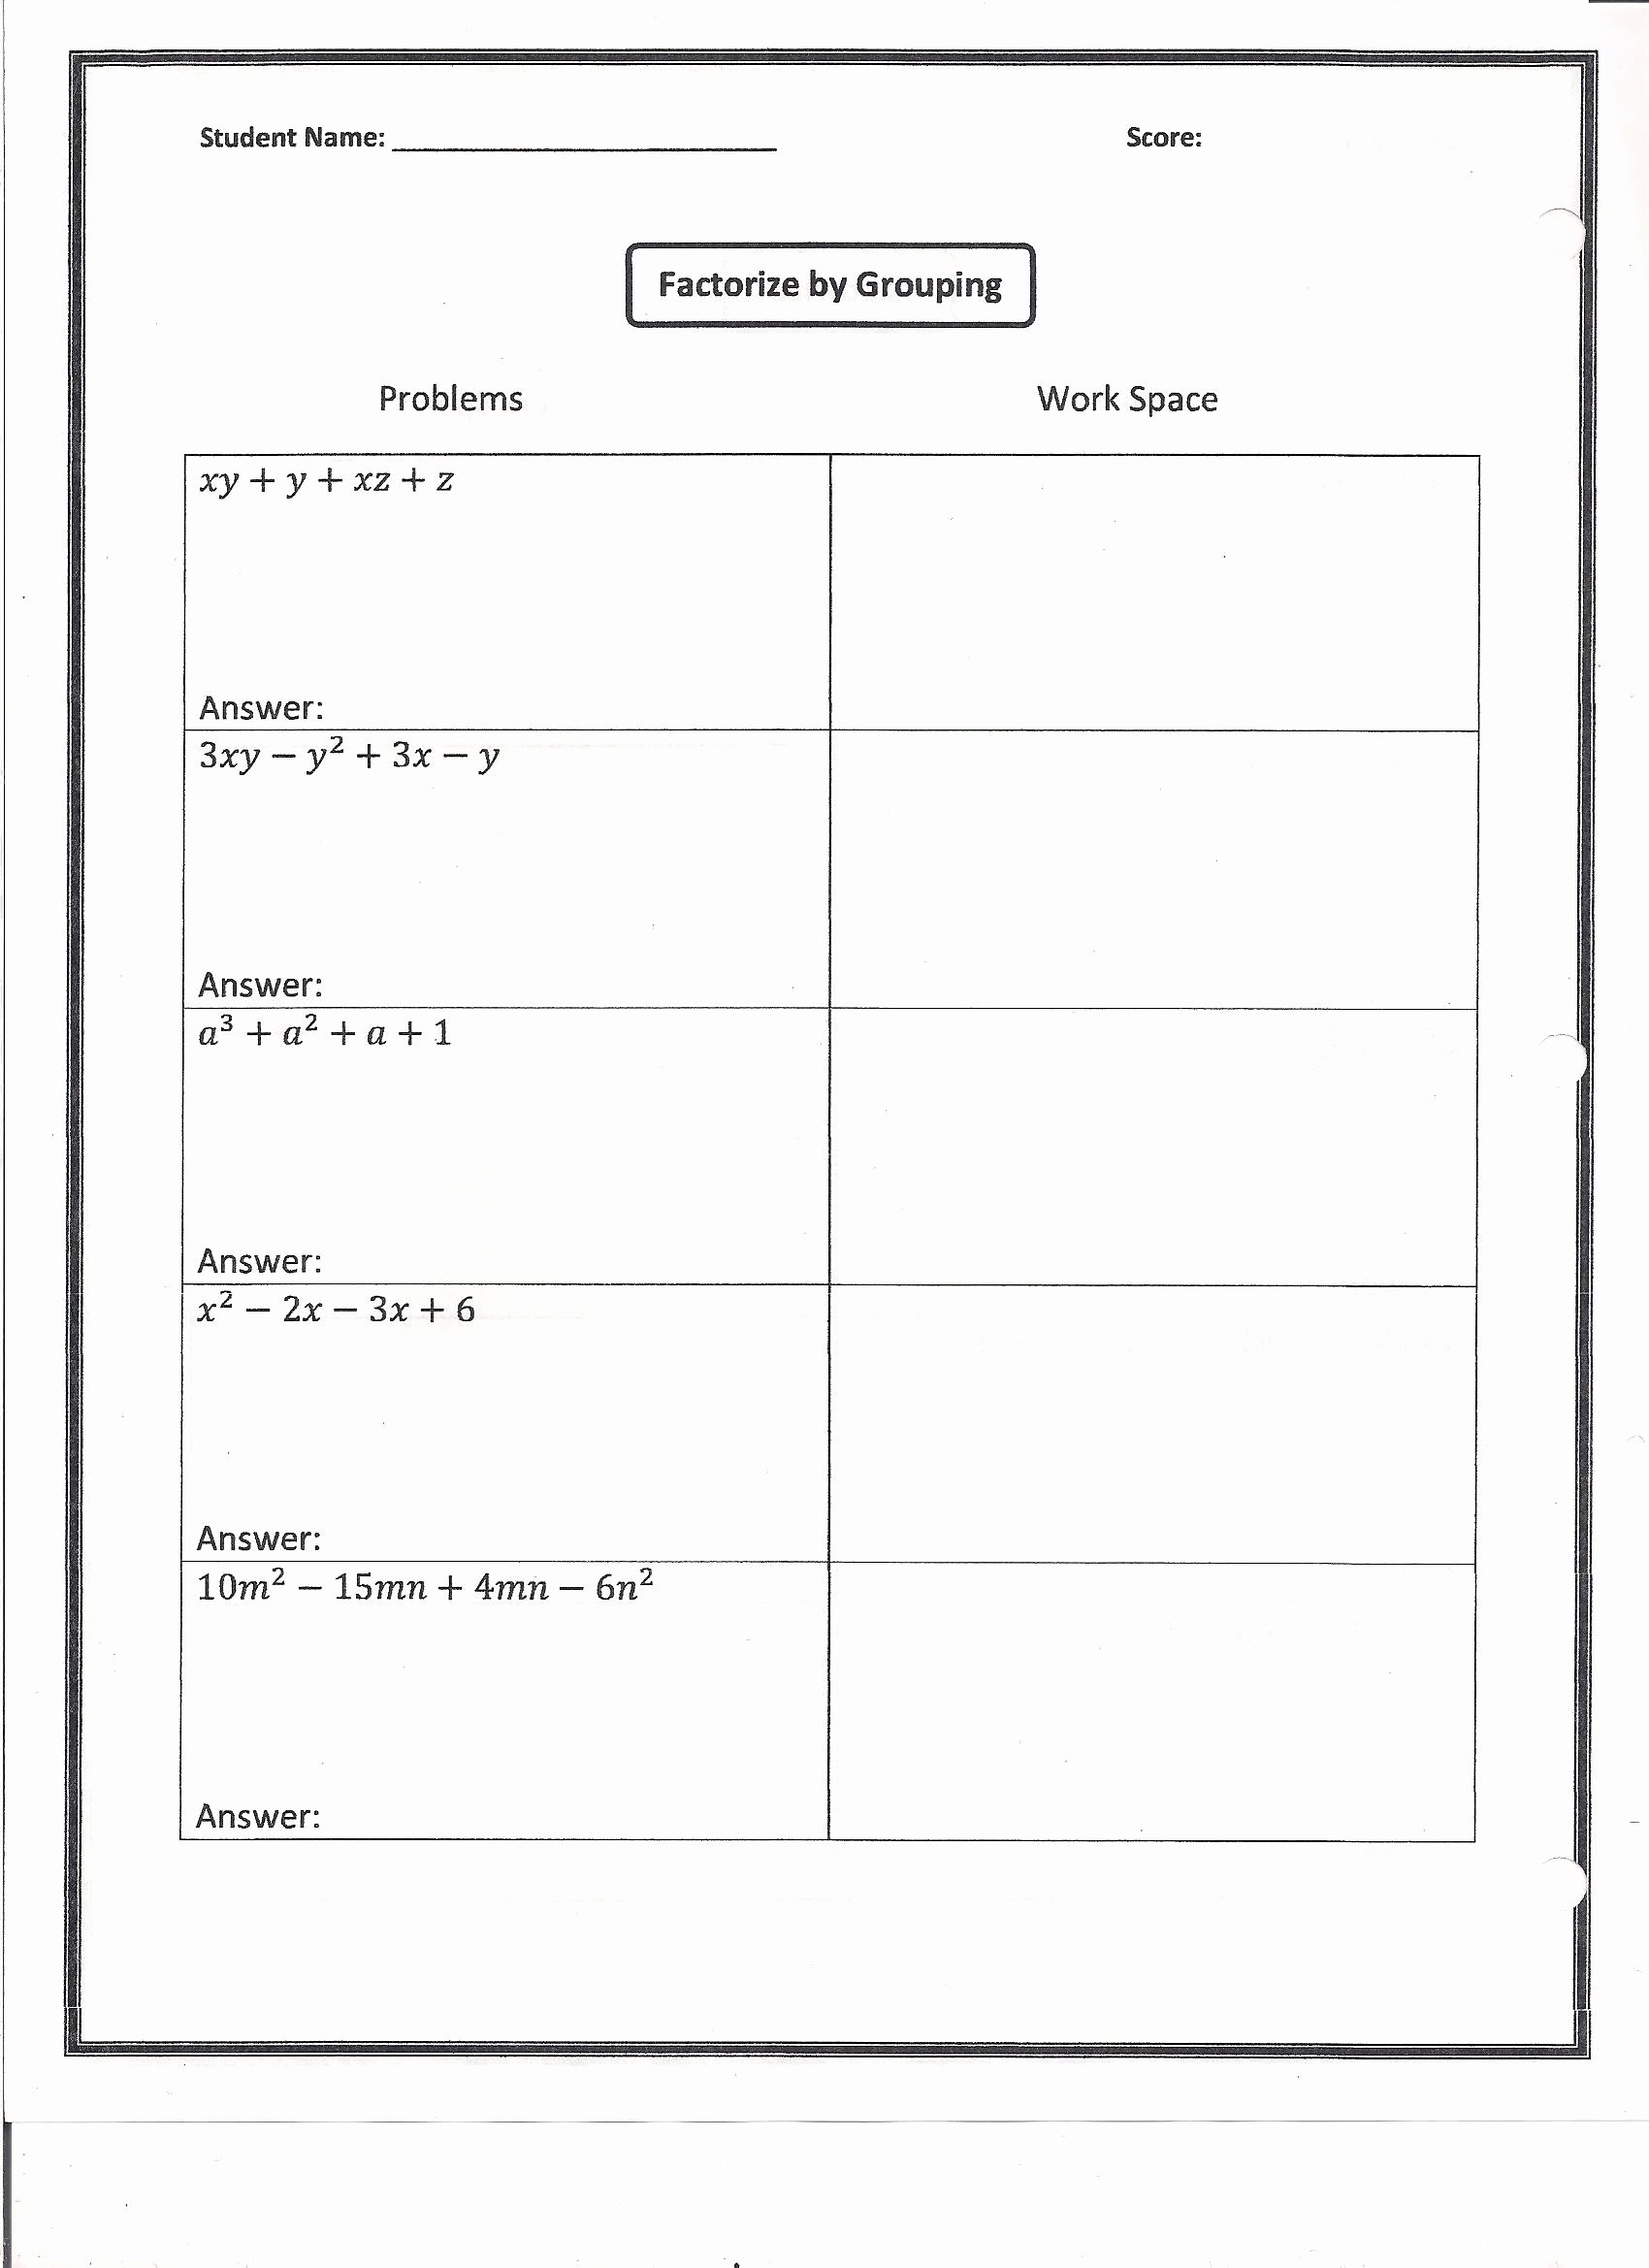 Factoring by Grouping Worksheet Answers Fresh Factoring Homework Worksheet